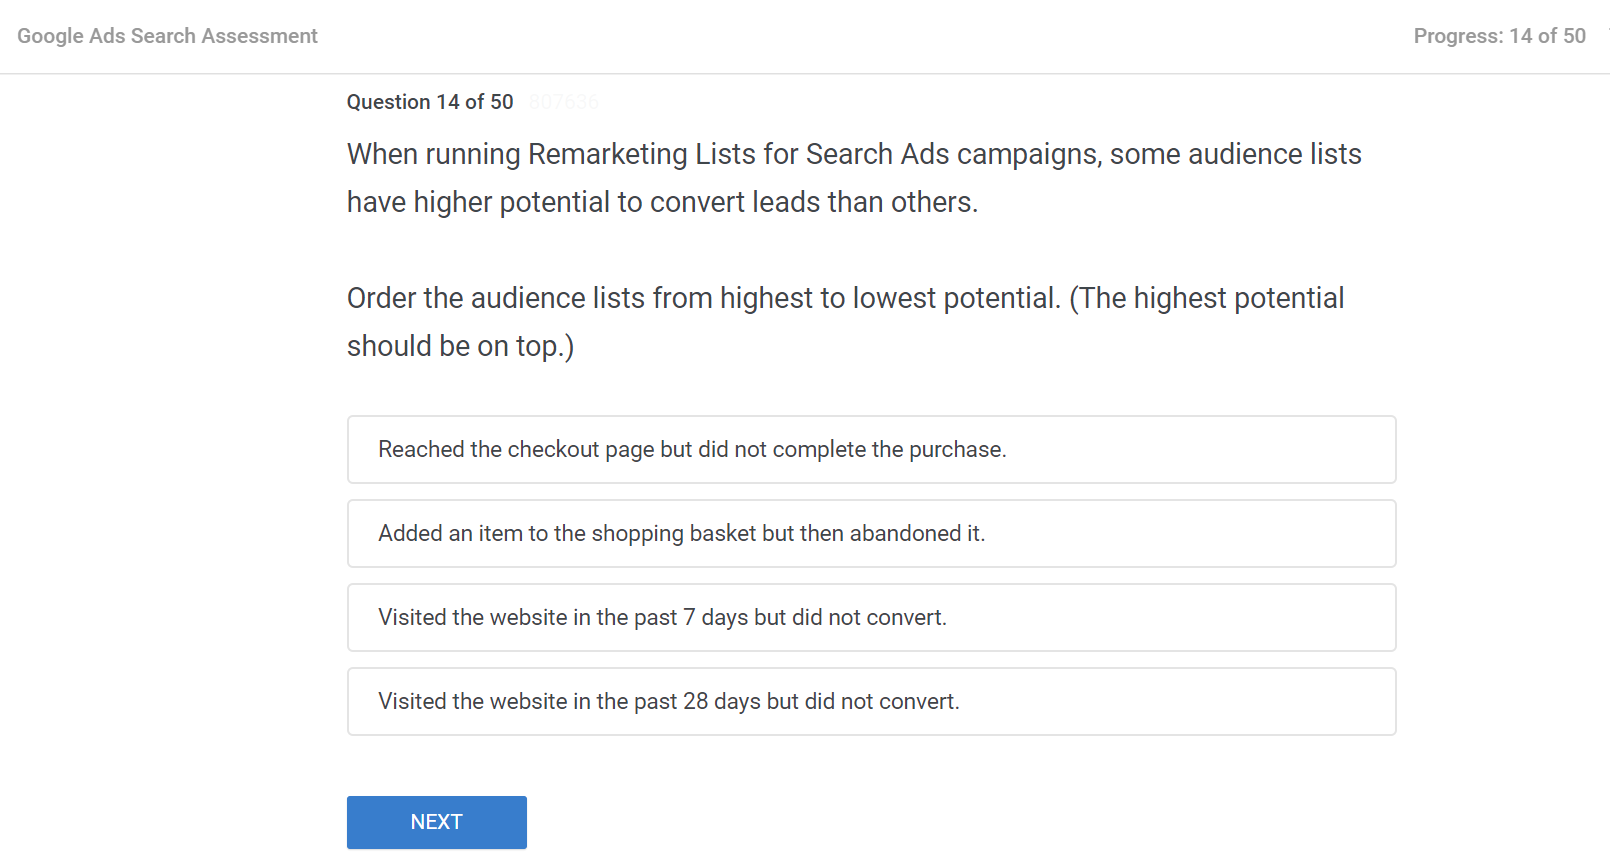 When running Remarketing Lists for Search Ads campaigns some audience lists have higher potential to convert leads than others